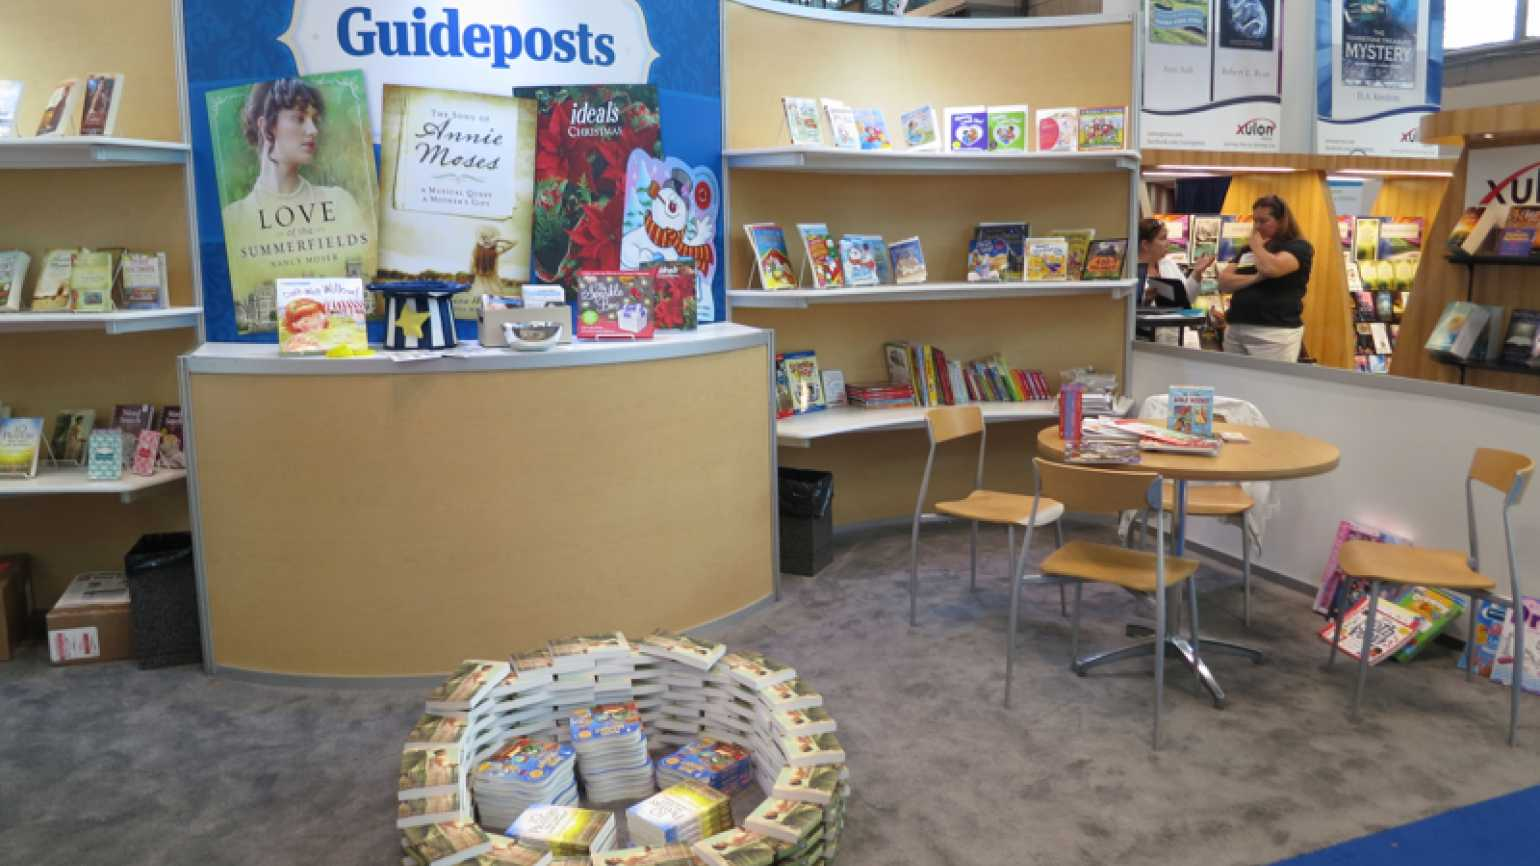 The Guideposts booth at Book Expo America, with piles and displays of books